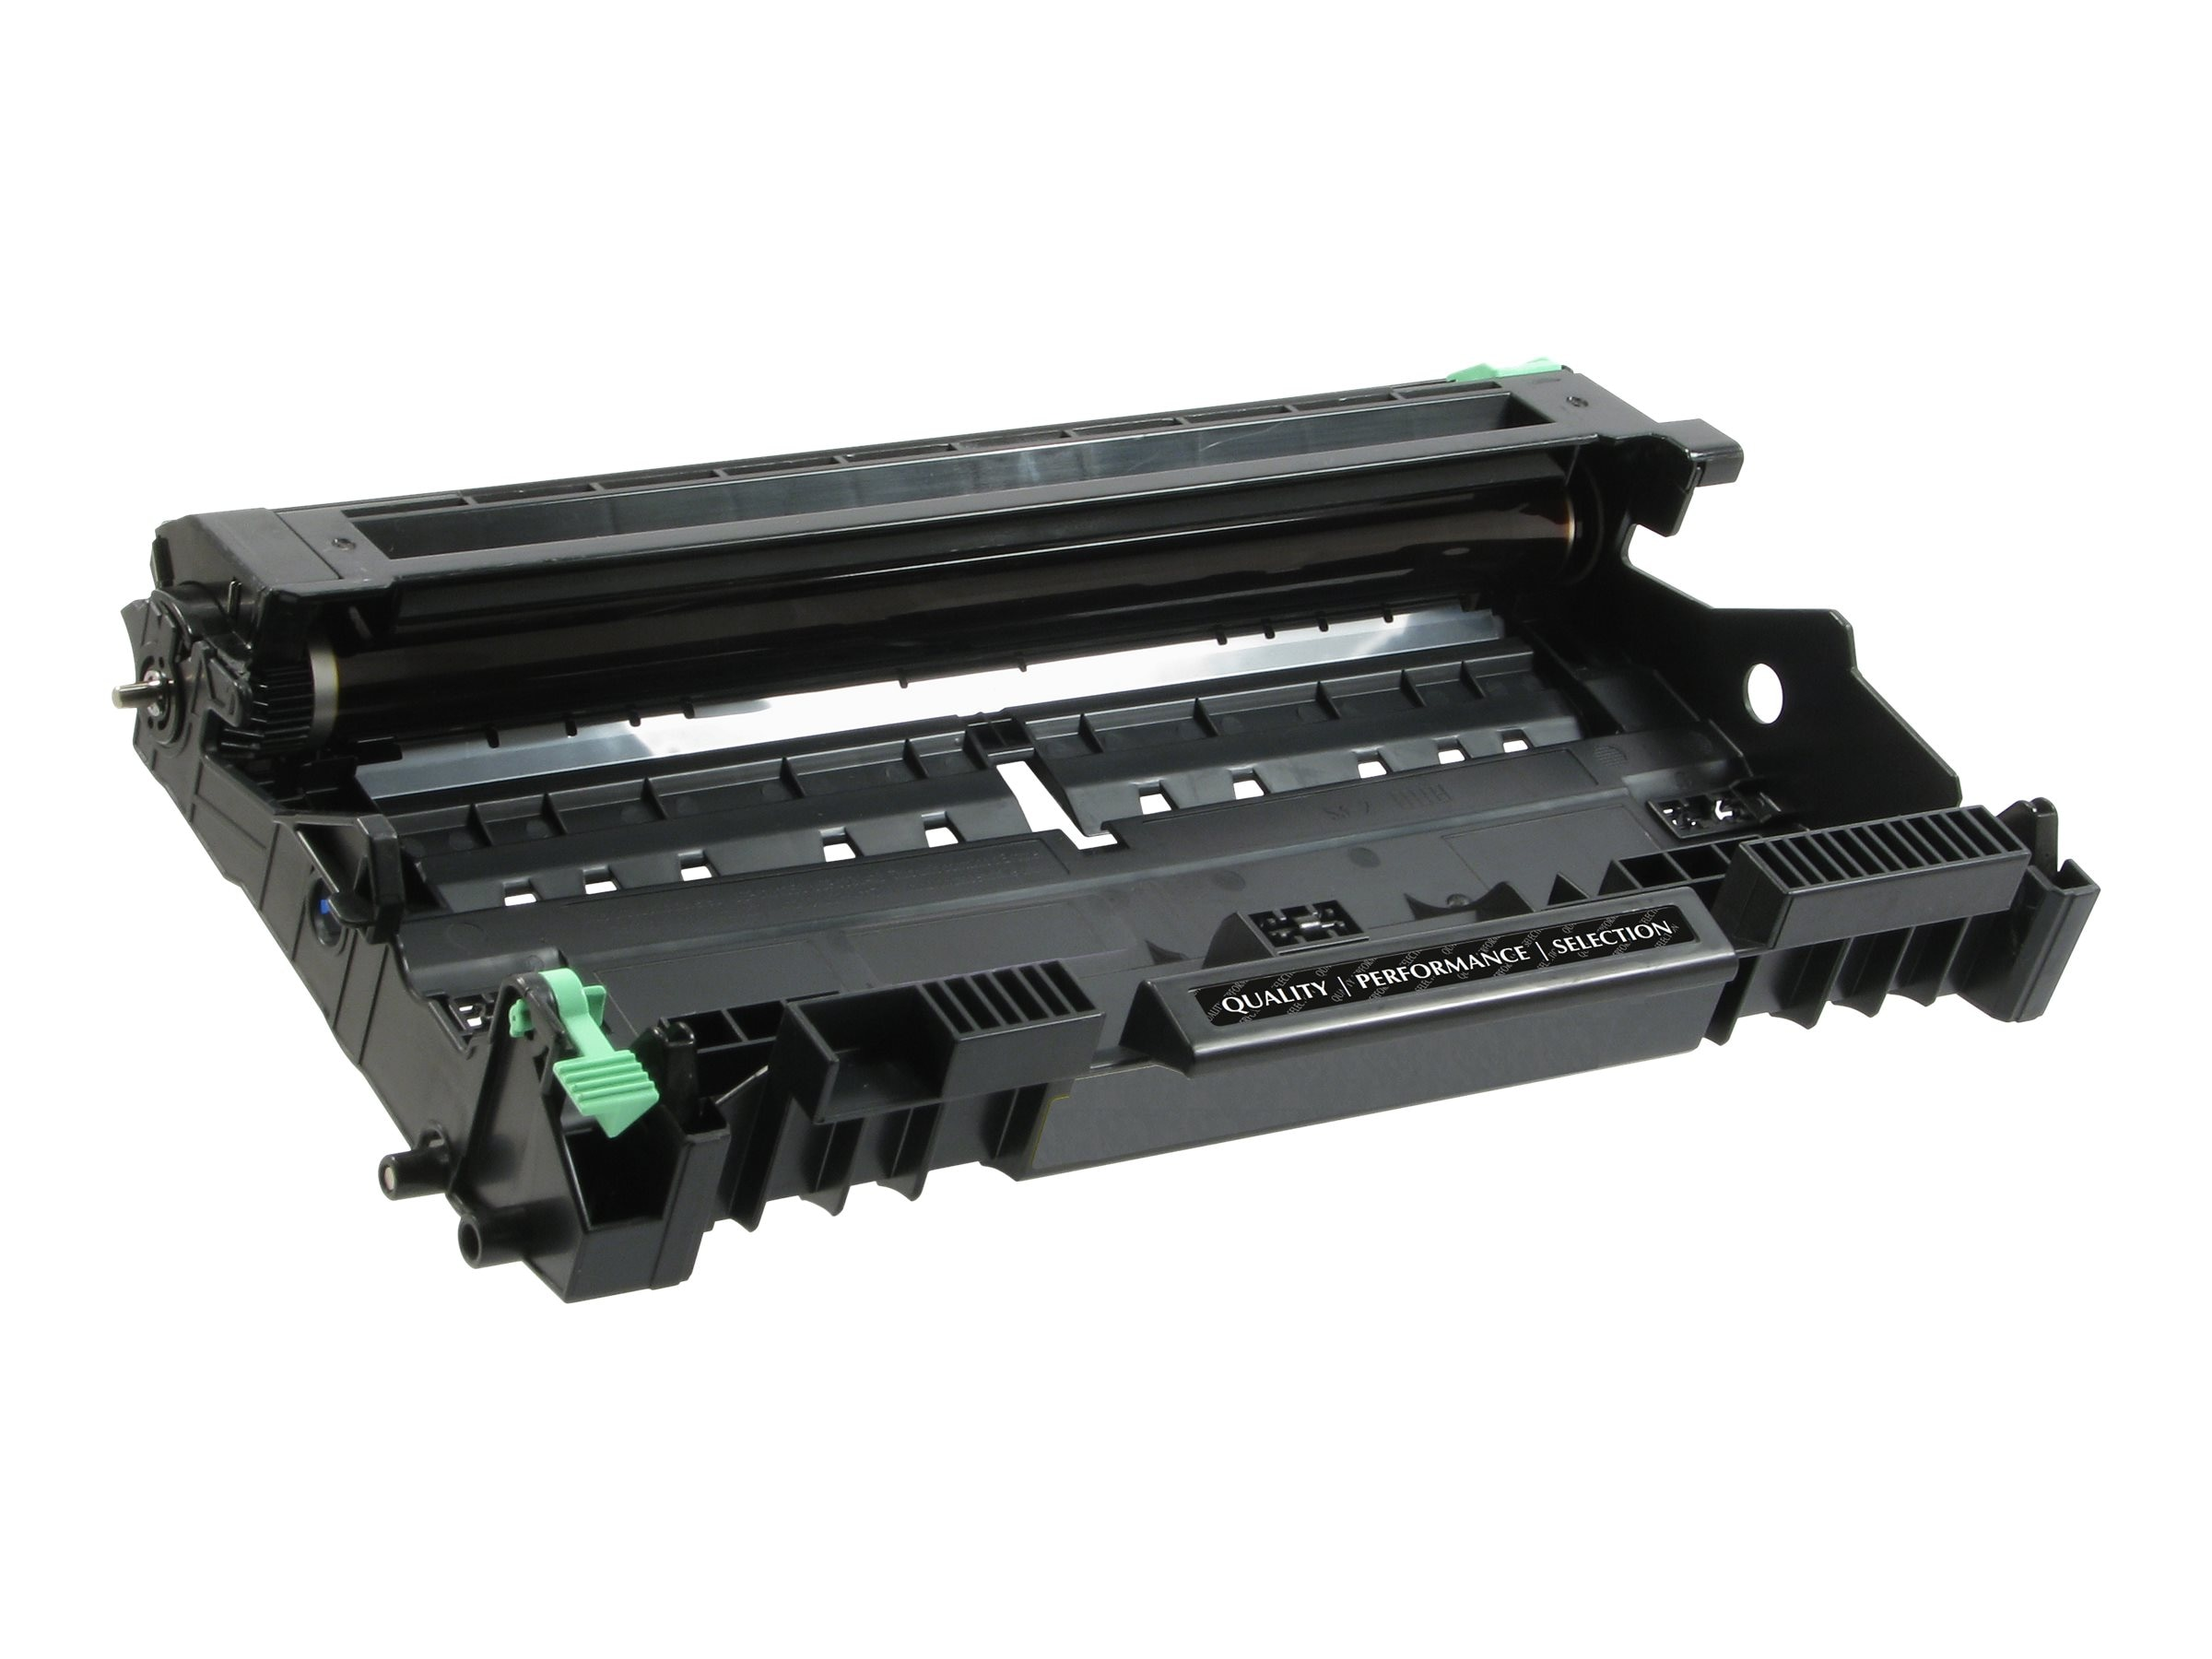 V7 DR720 Replacement Drum Unit for Brother MFC-8710DW, V7DR720